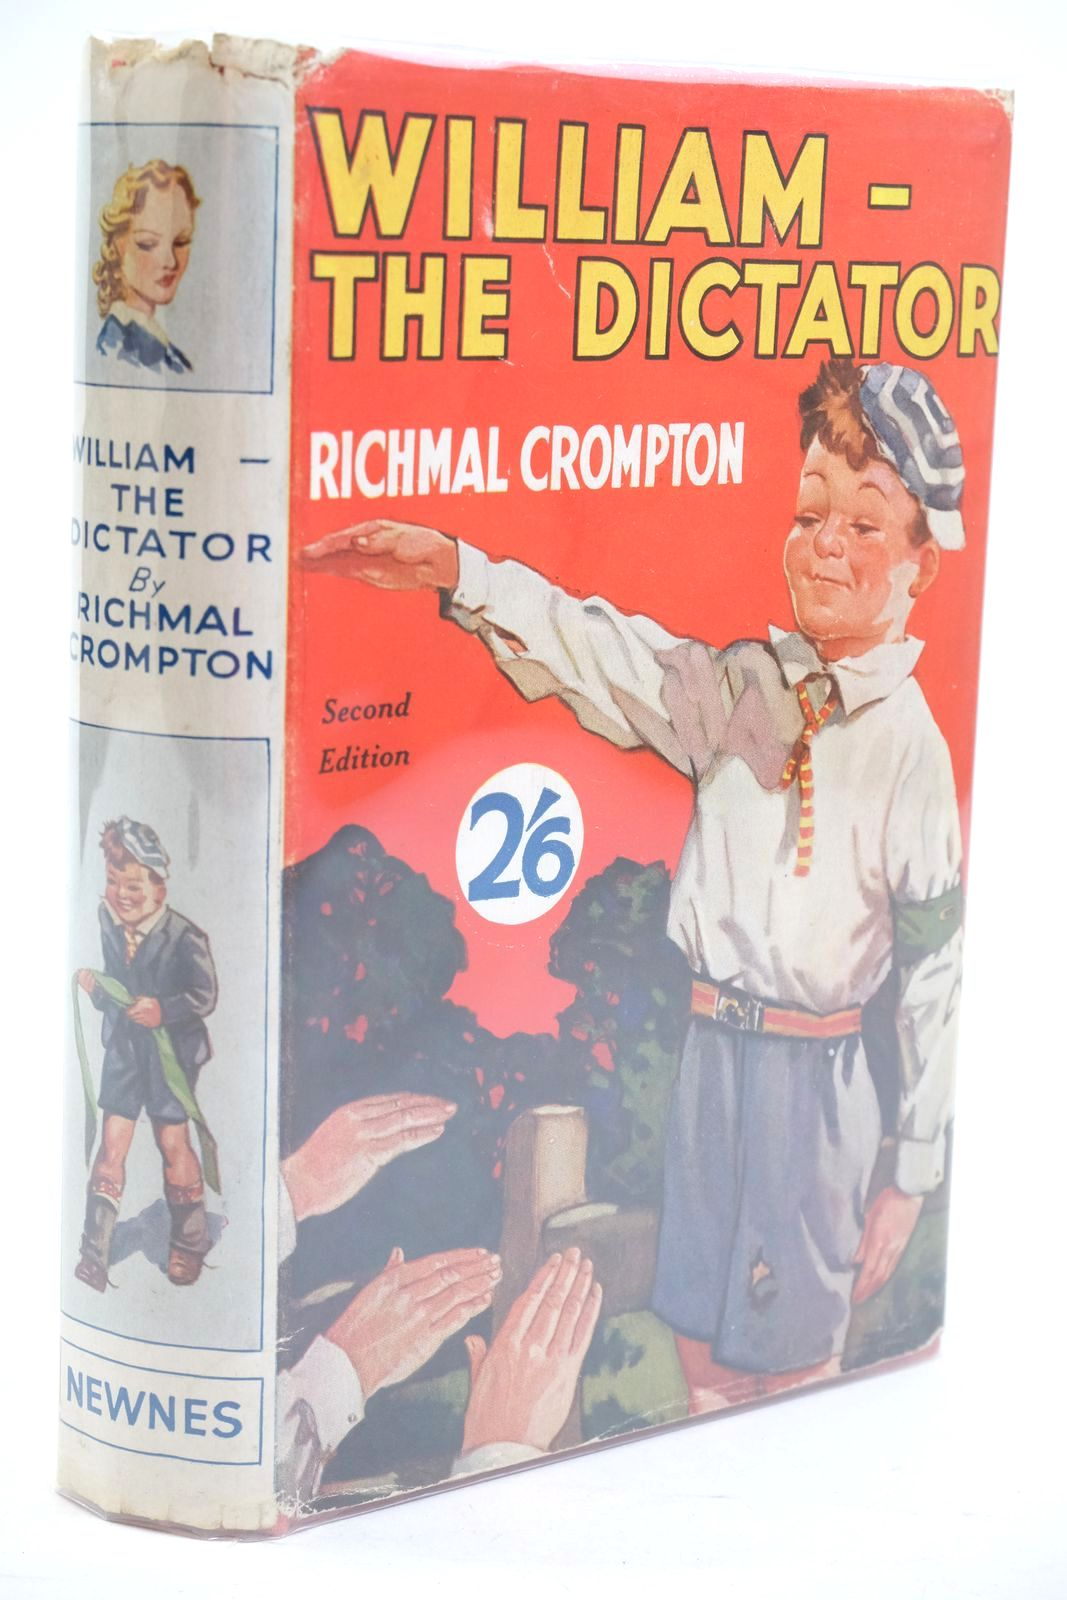 Photo of WILLIAM THE DICTATOR written by Crompton, Richmal illustrated by Henry, Thomas published by George Newnes Limited (STOCK CODE: 1320875)  for sale by Stella & Rose's Books